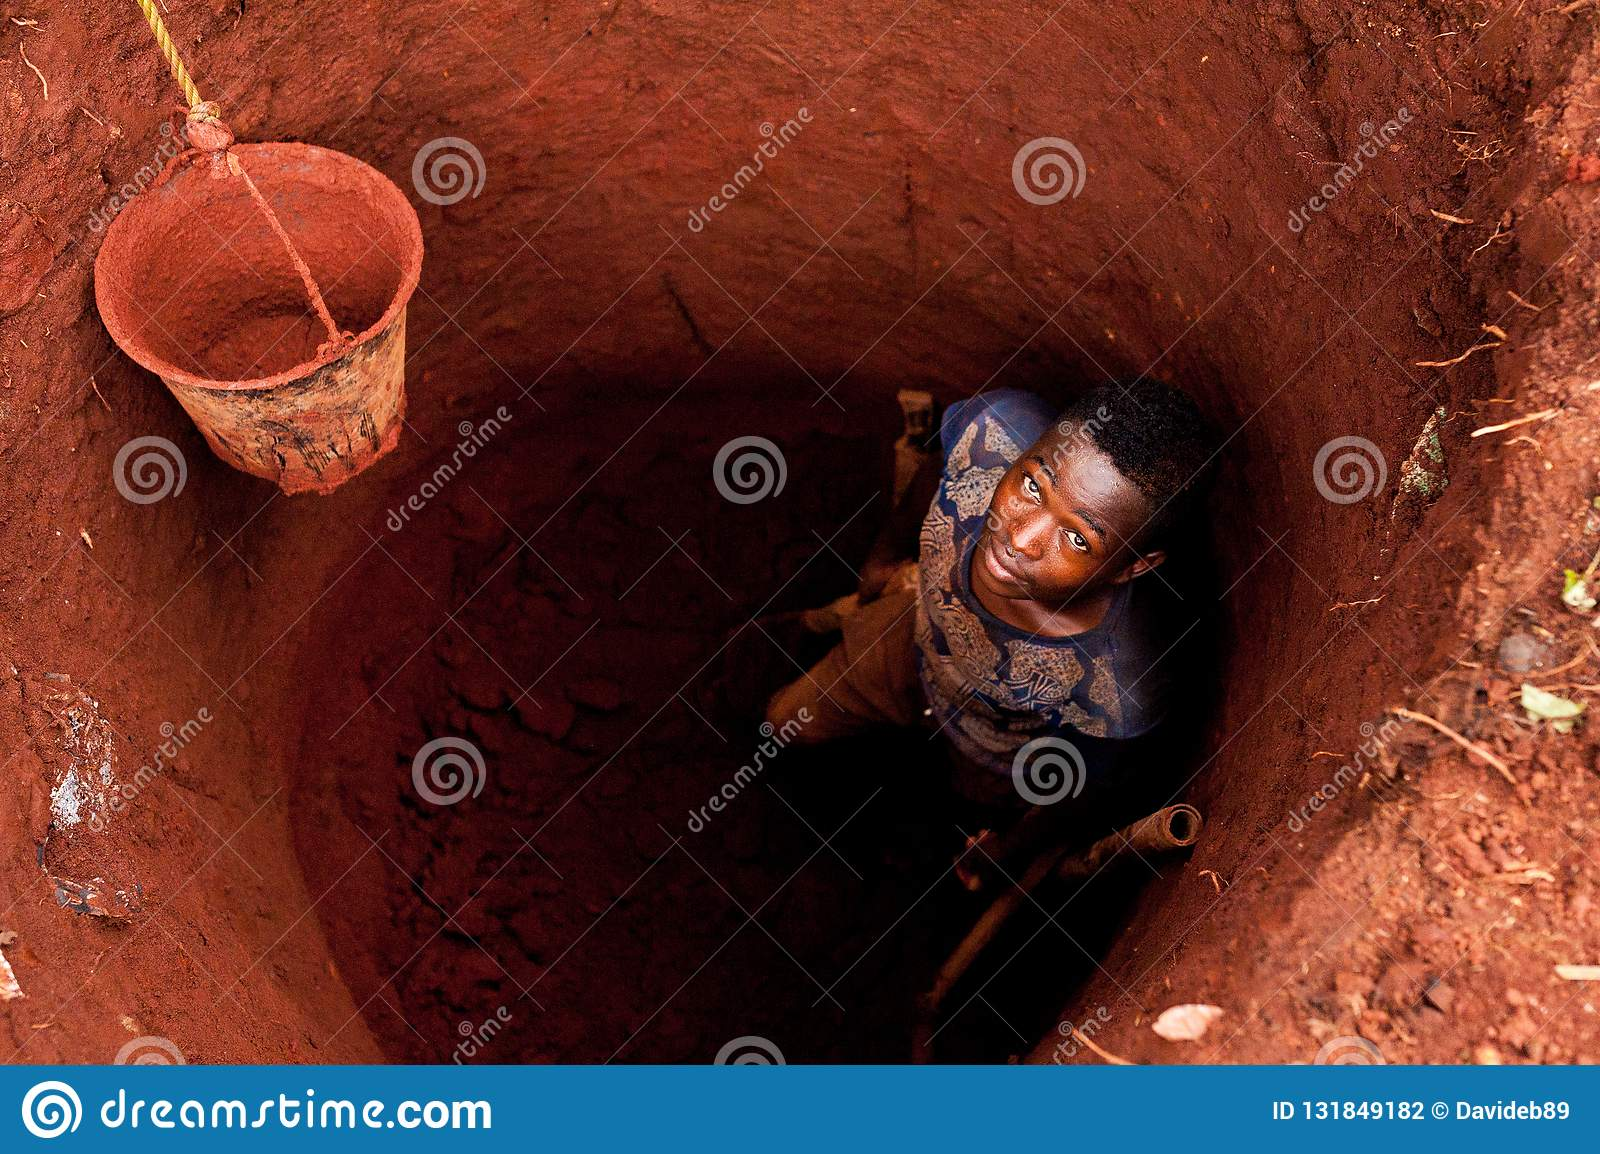 58,151 Water Well Photos - Free & Royalty-Free Stock Photos from Dreamstime